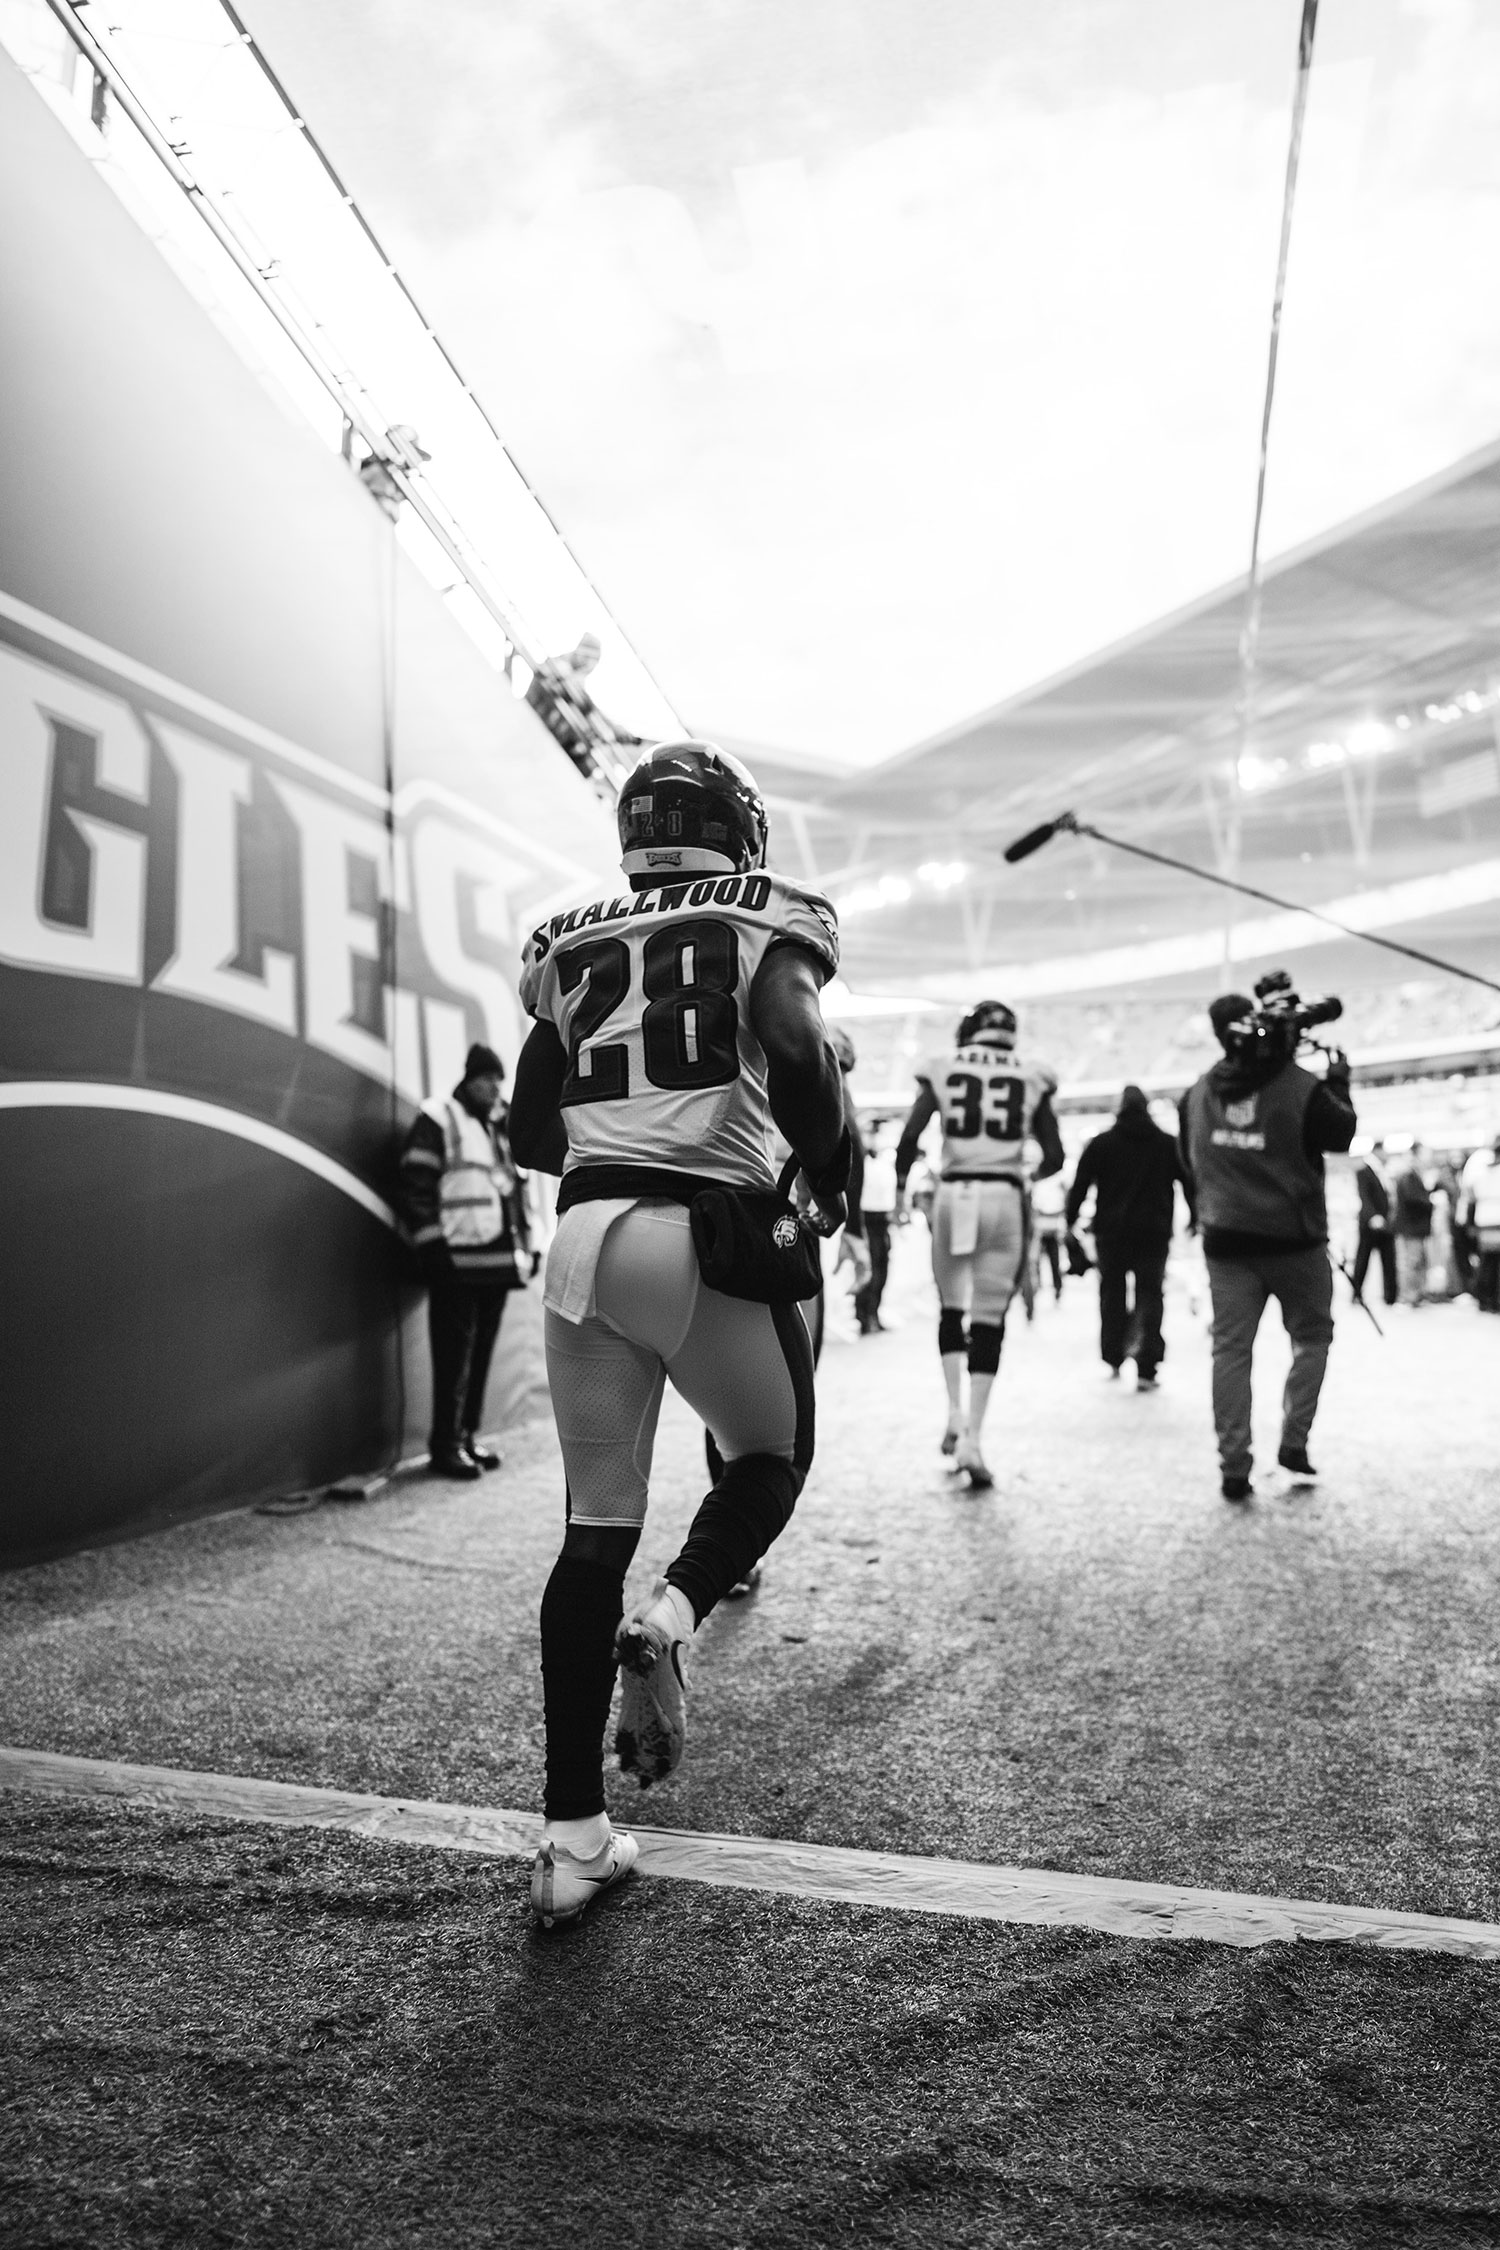 NFL photography